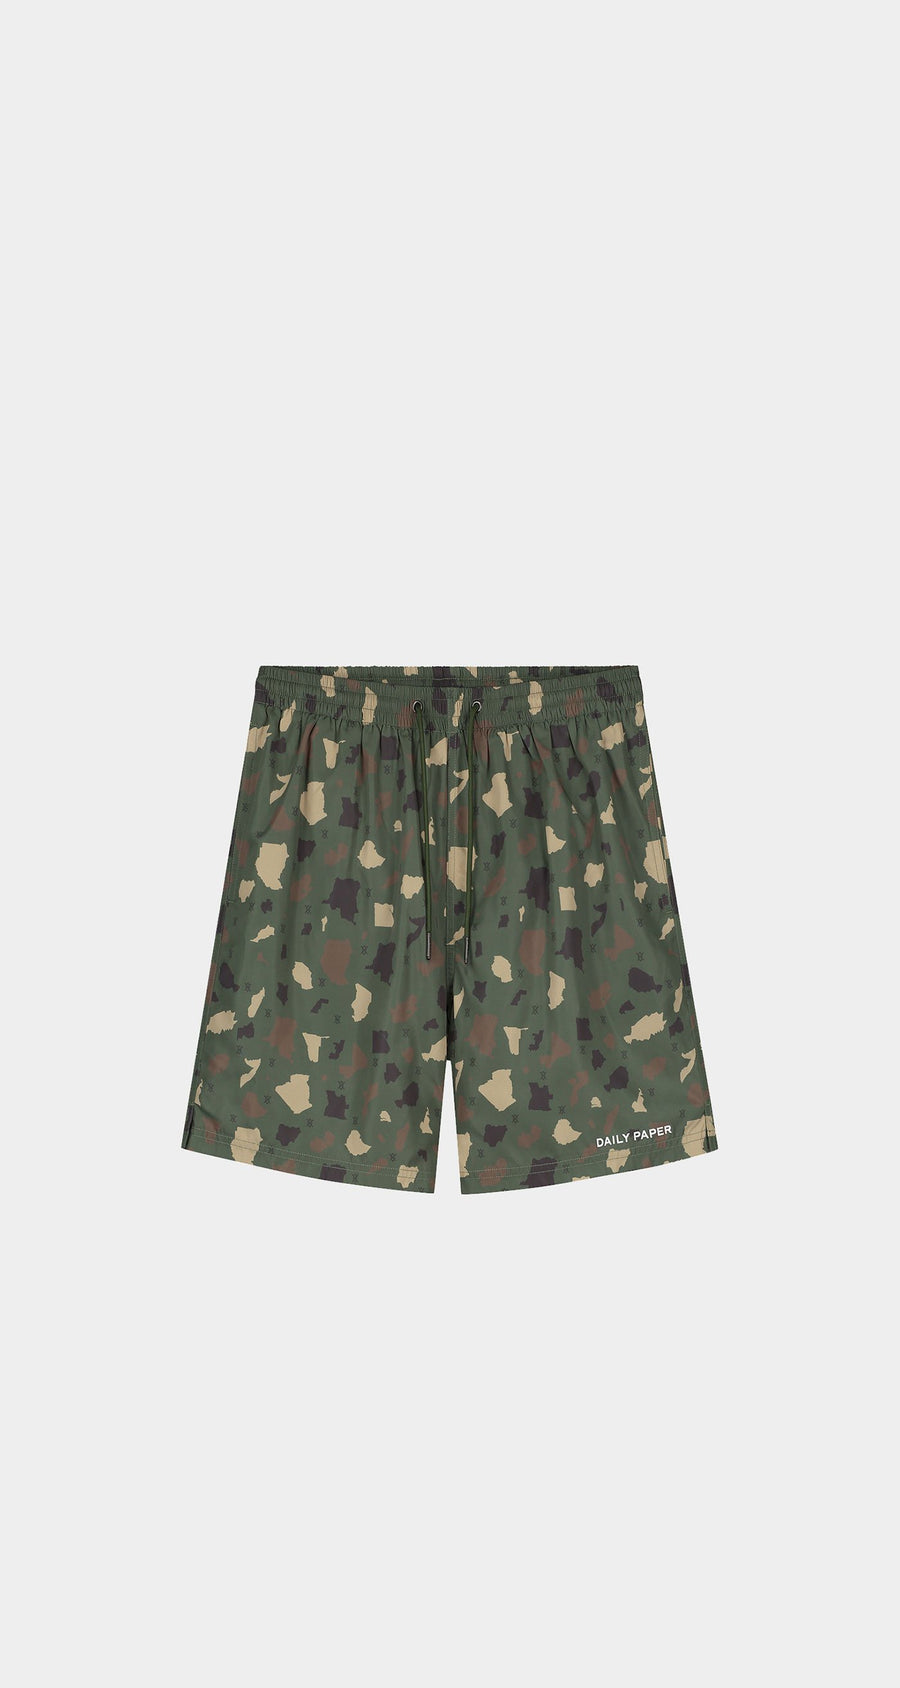 Daily Paper - Green Camo Recomo Swim Shorts - Men Front